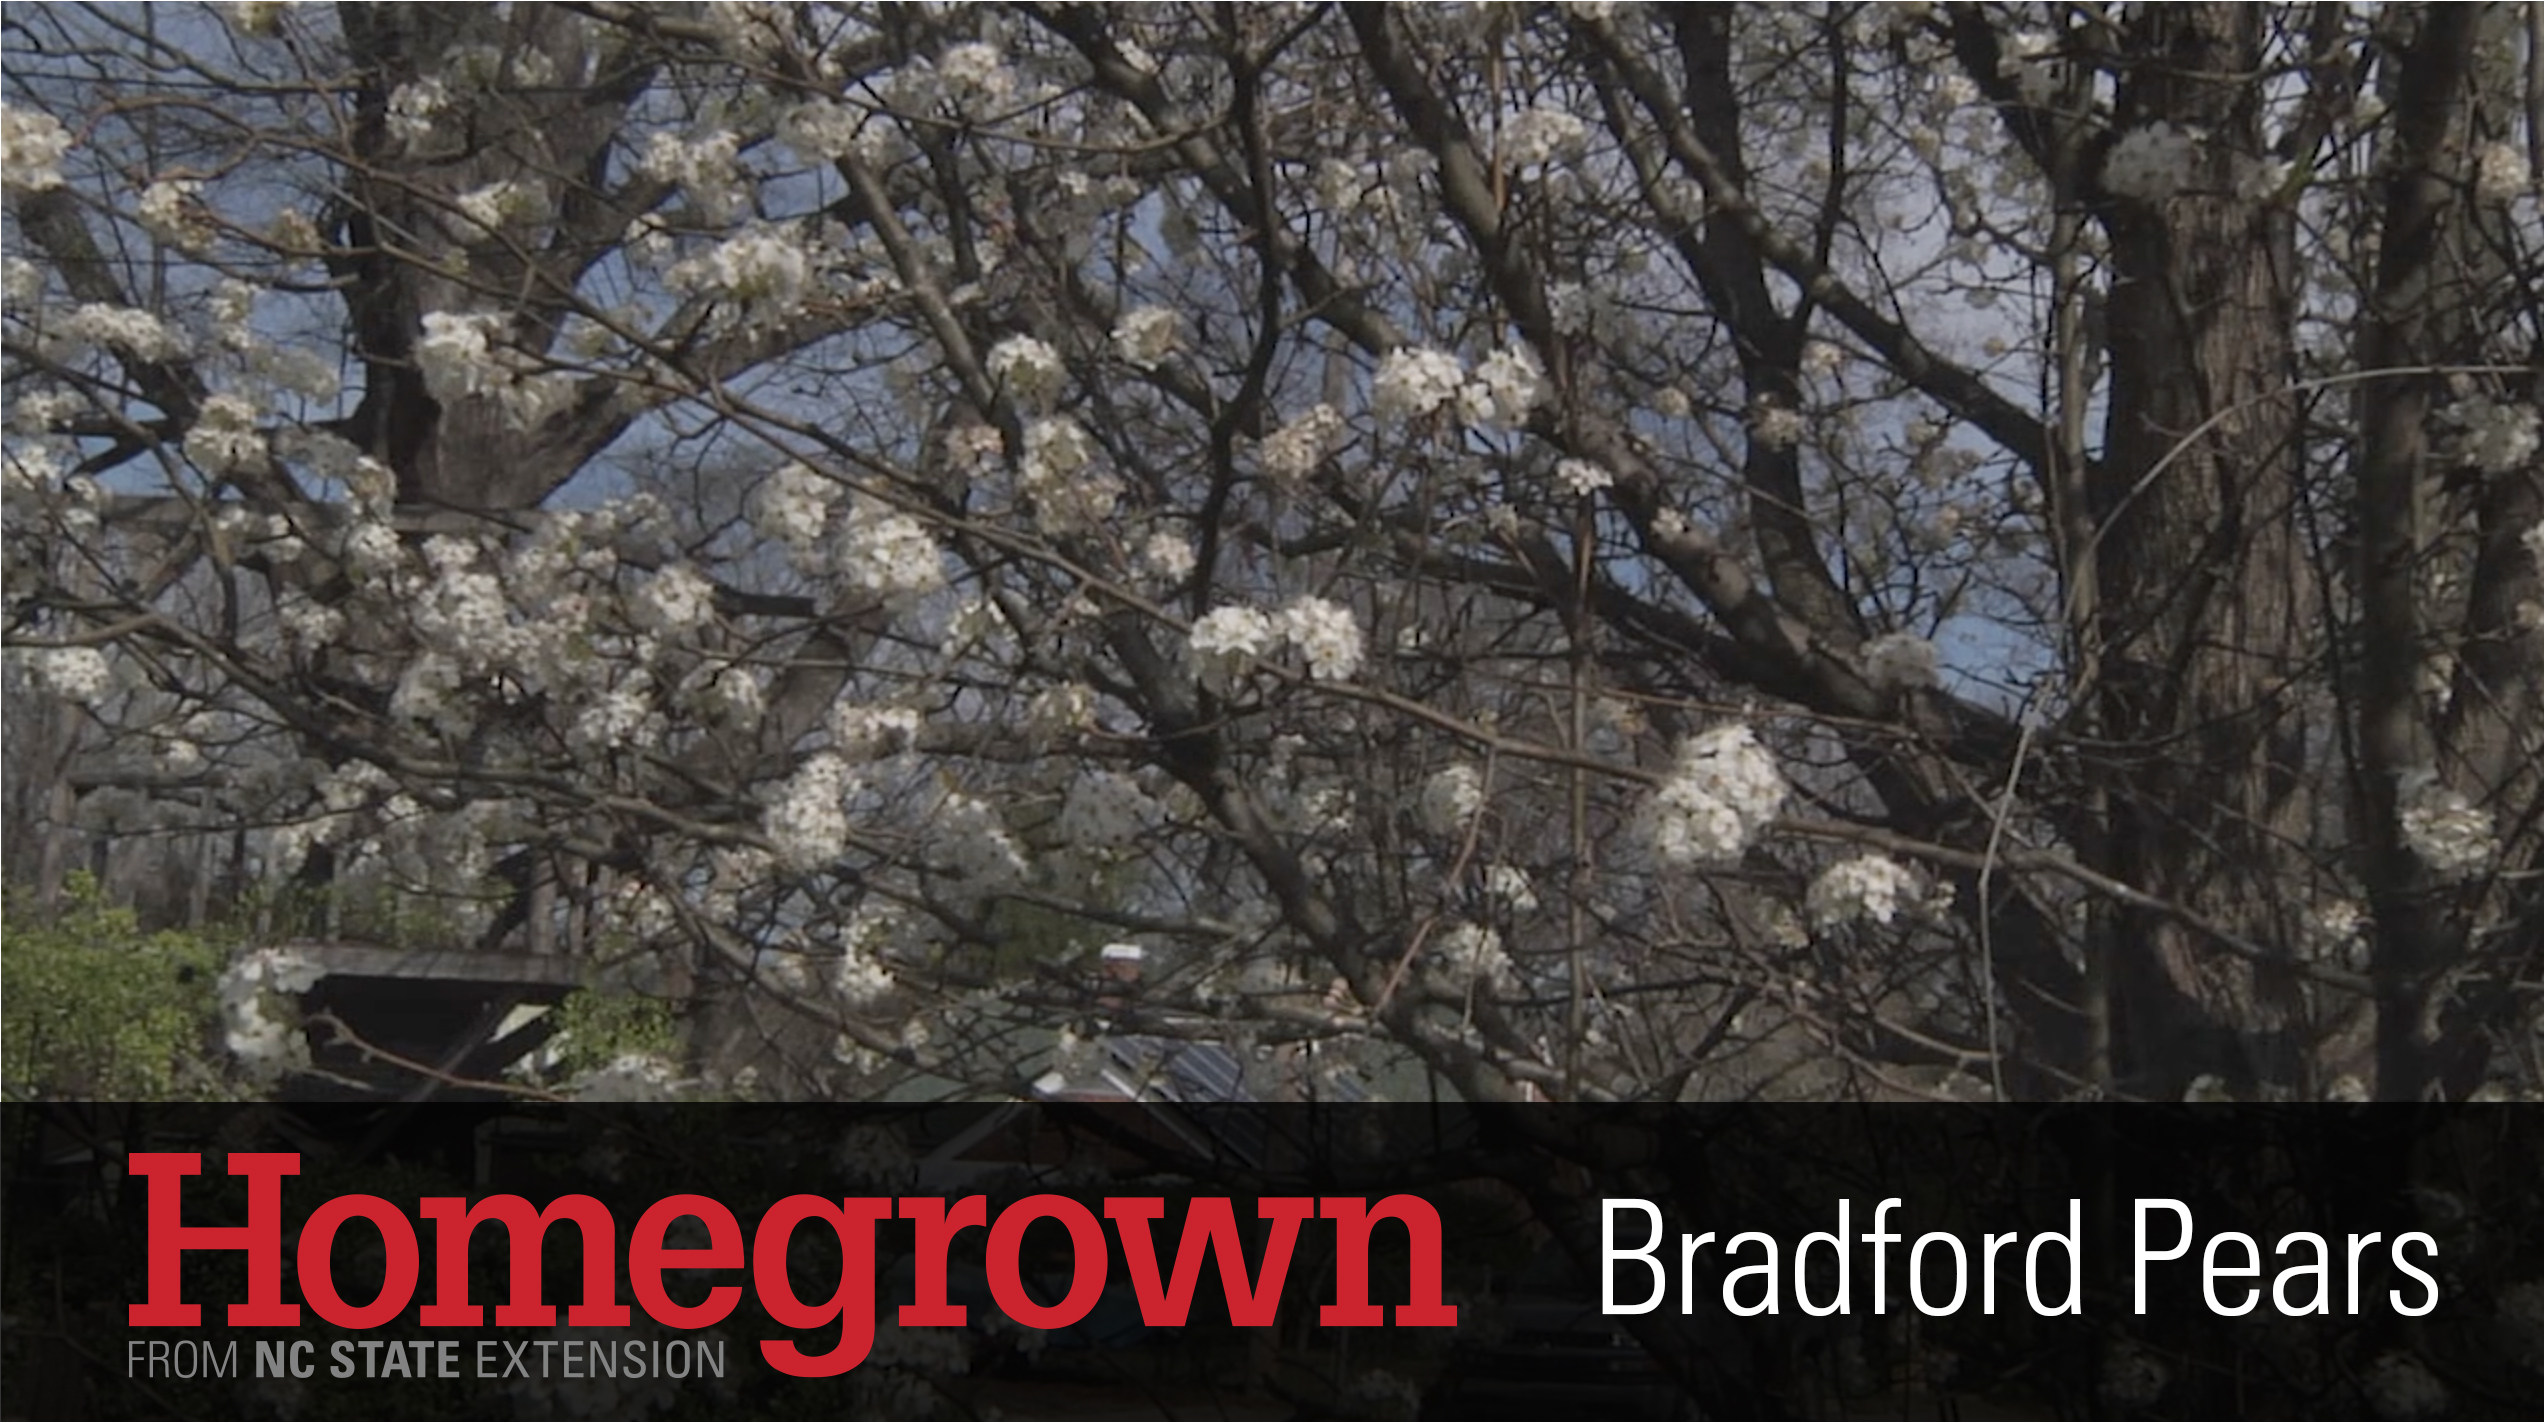 A photo of blooming Bradford pear trees